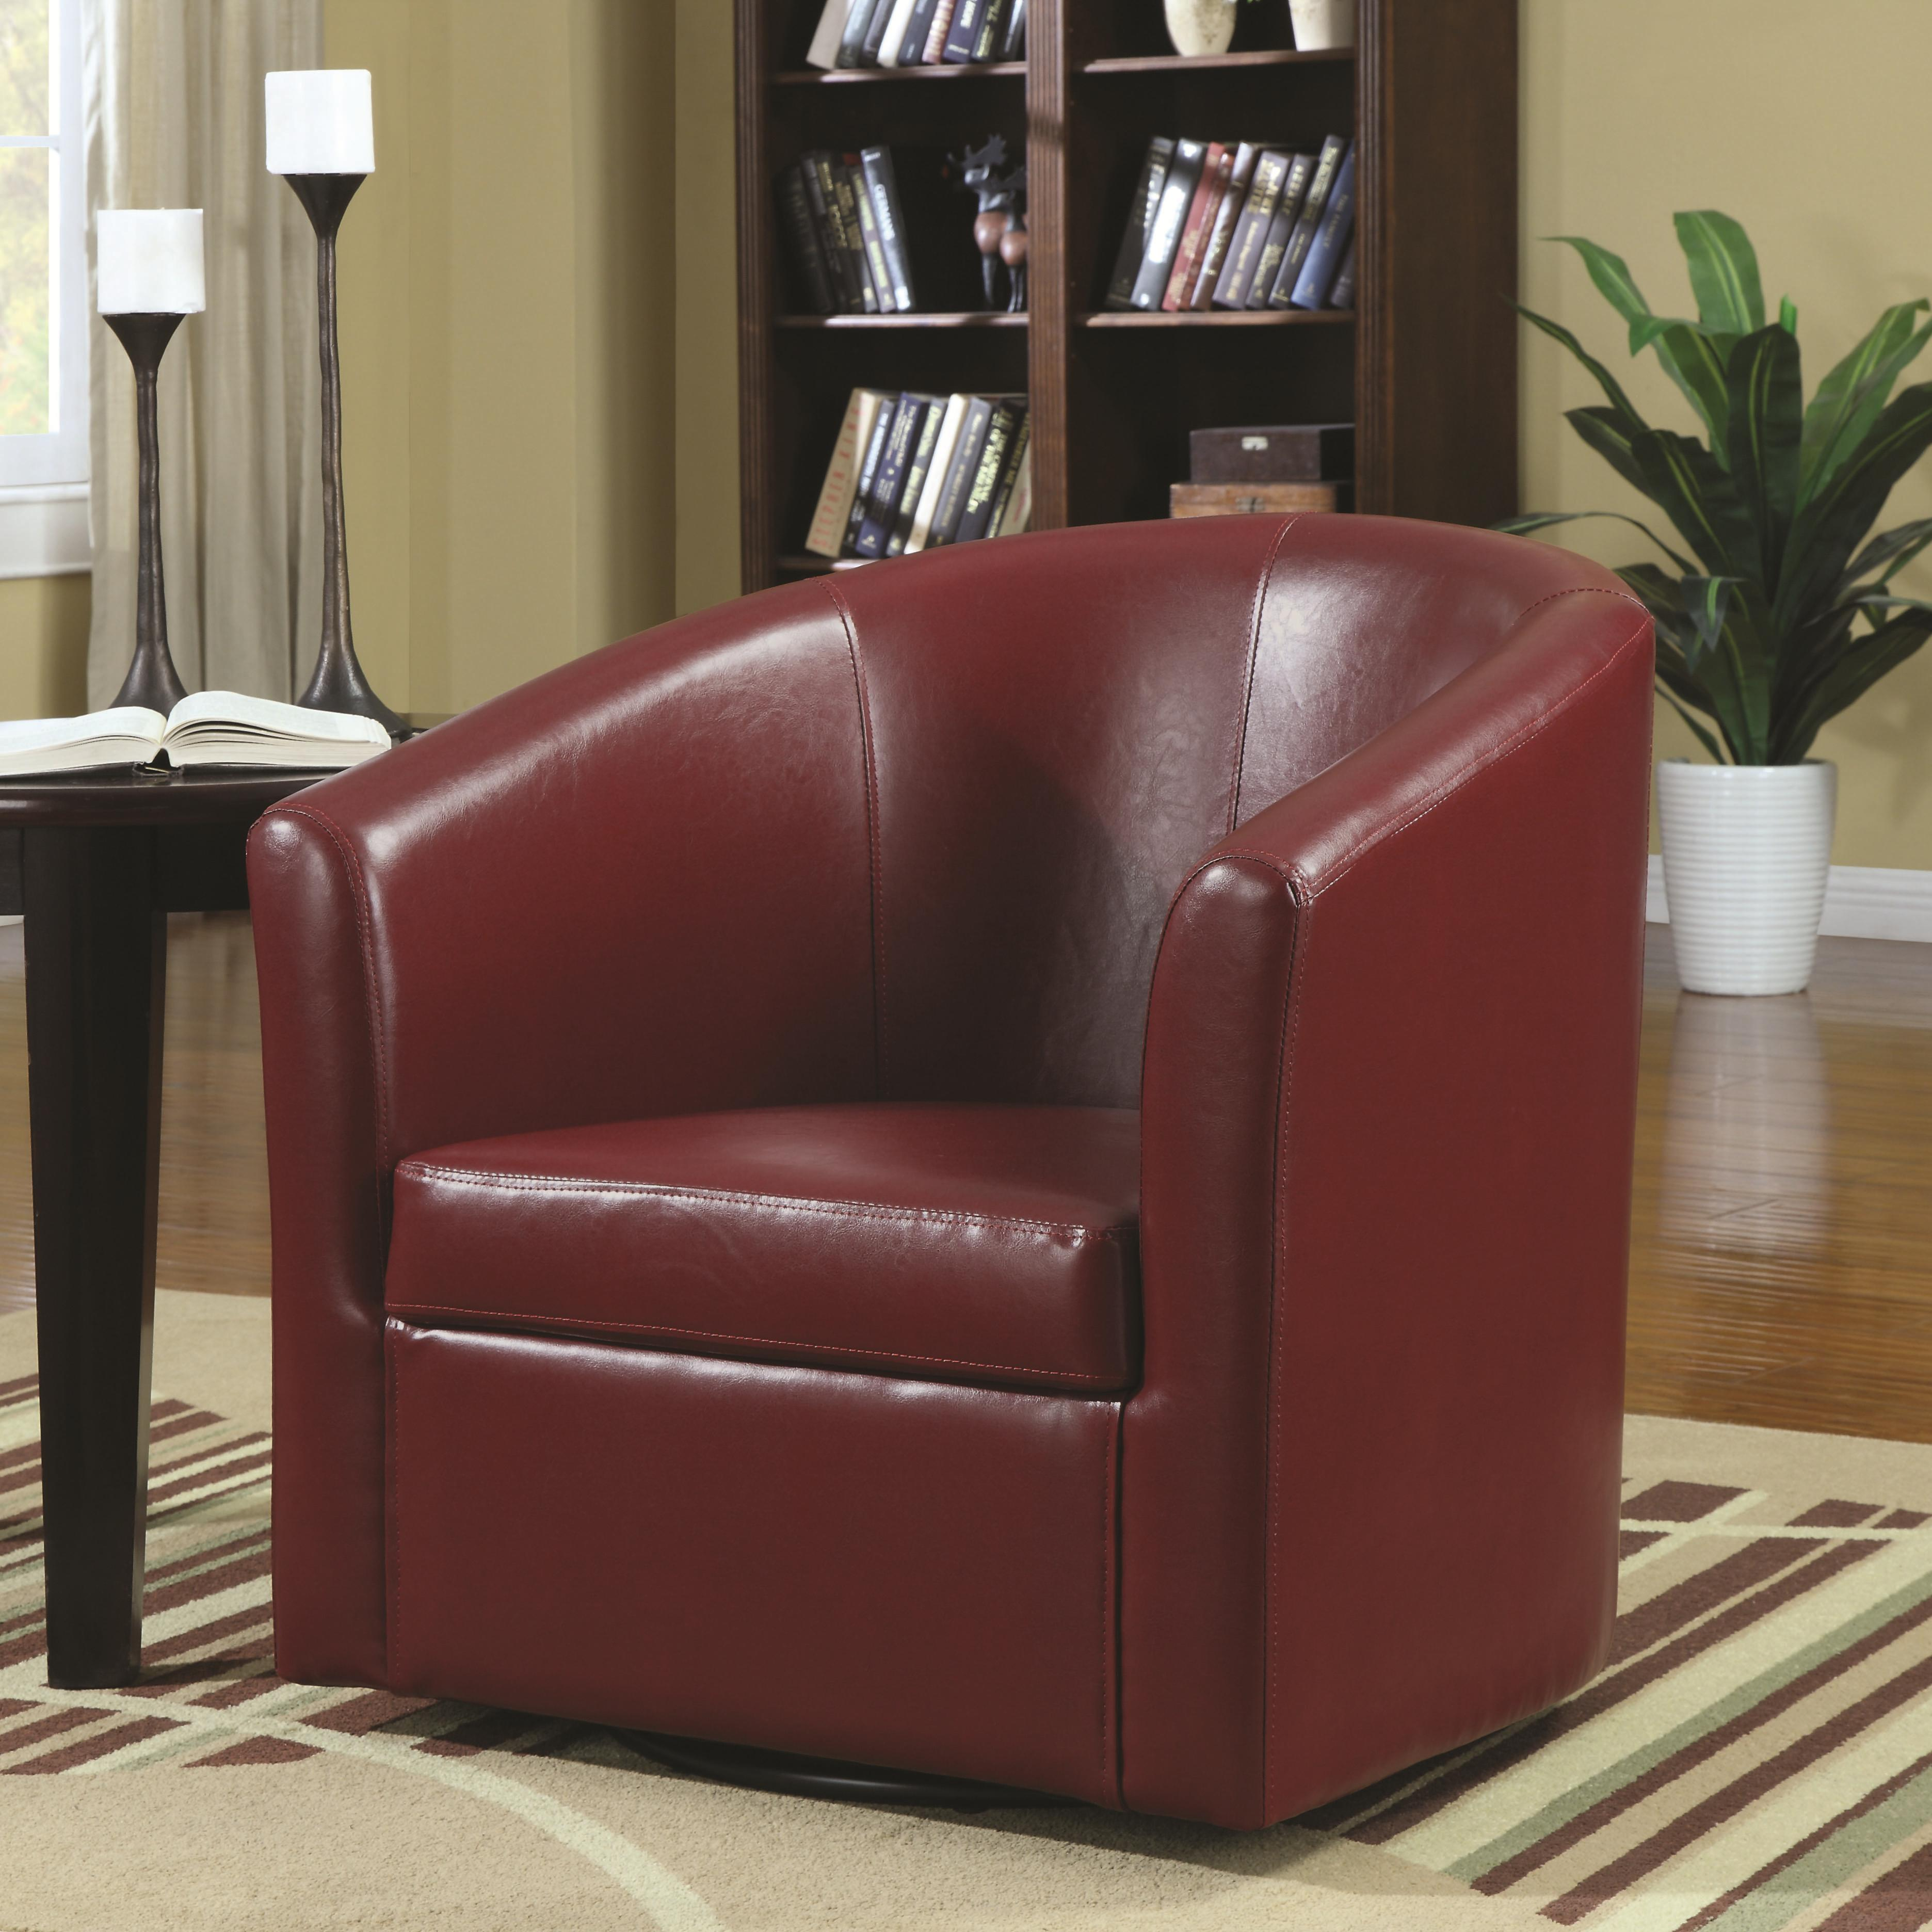 Coaster Accent Seating 902099 Contemporary Styled Accent